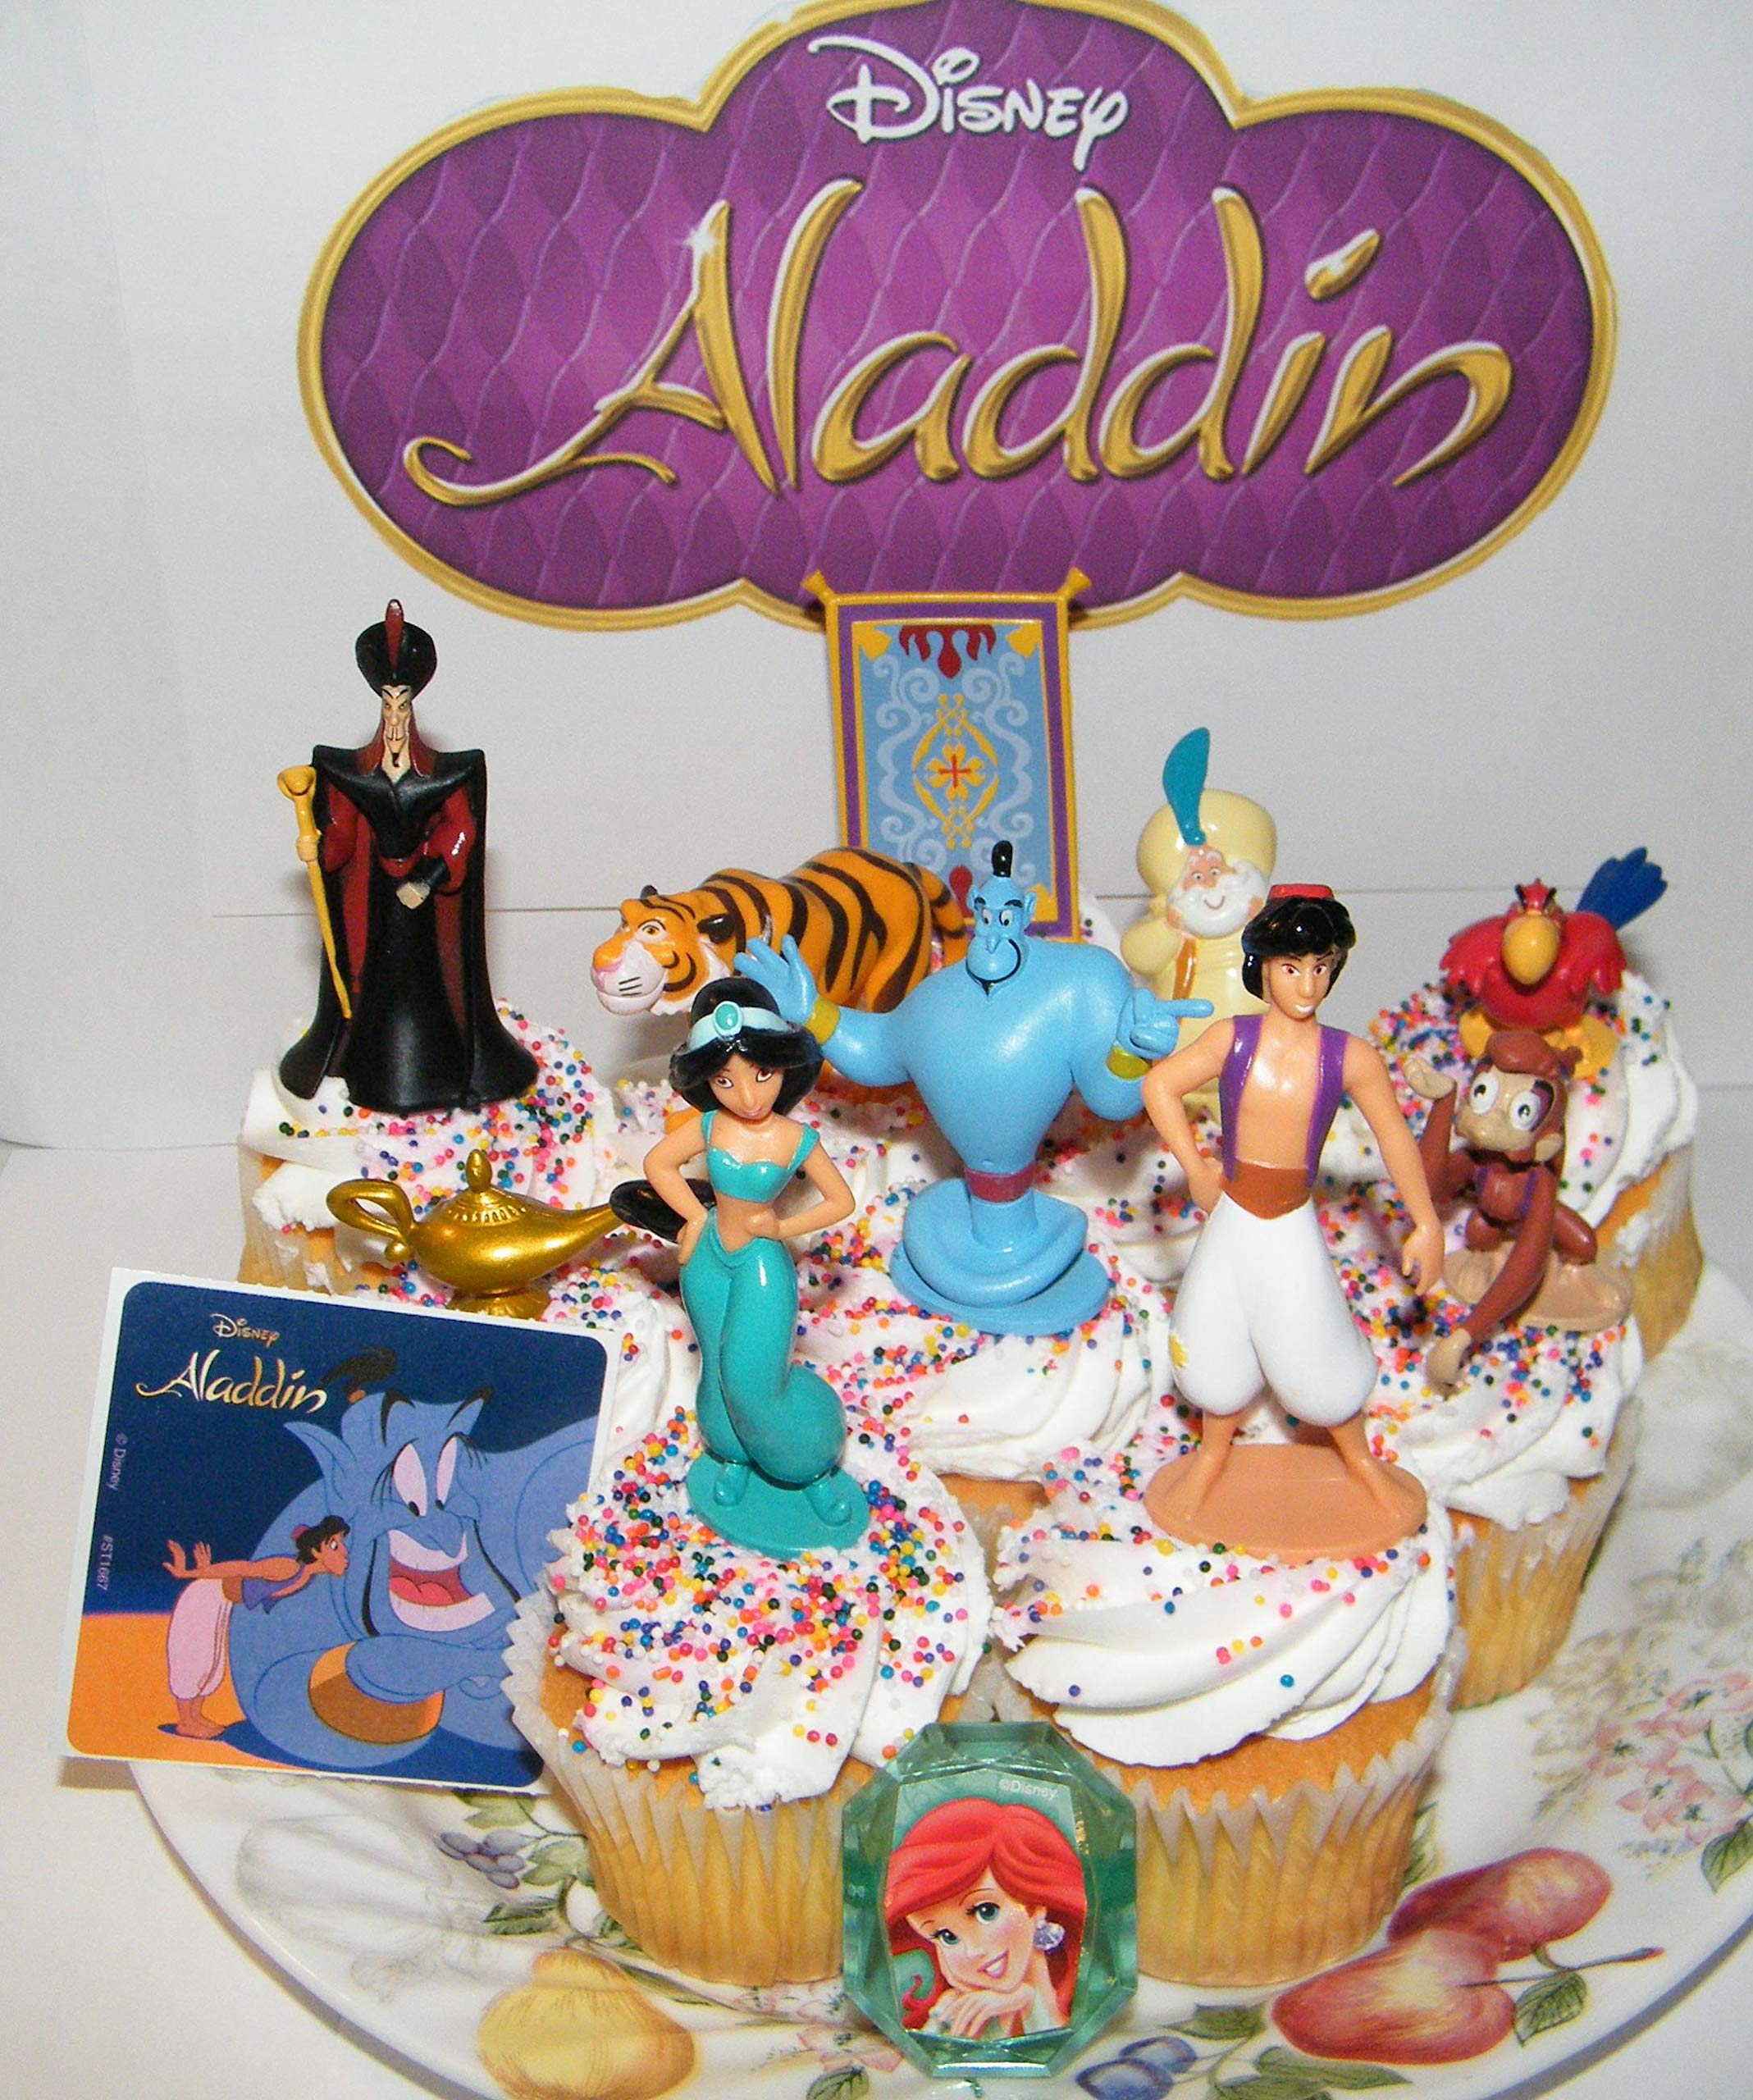 Aladdin Movie Deluxe Cake Toppers Cupcake Decorations 12 Set with 10 Figures, Aladdin Sticker and PrincessRing Featuring Fun Characters, Magic Lamp, Flying Carpet Etc! by WDW